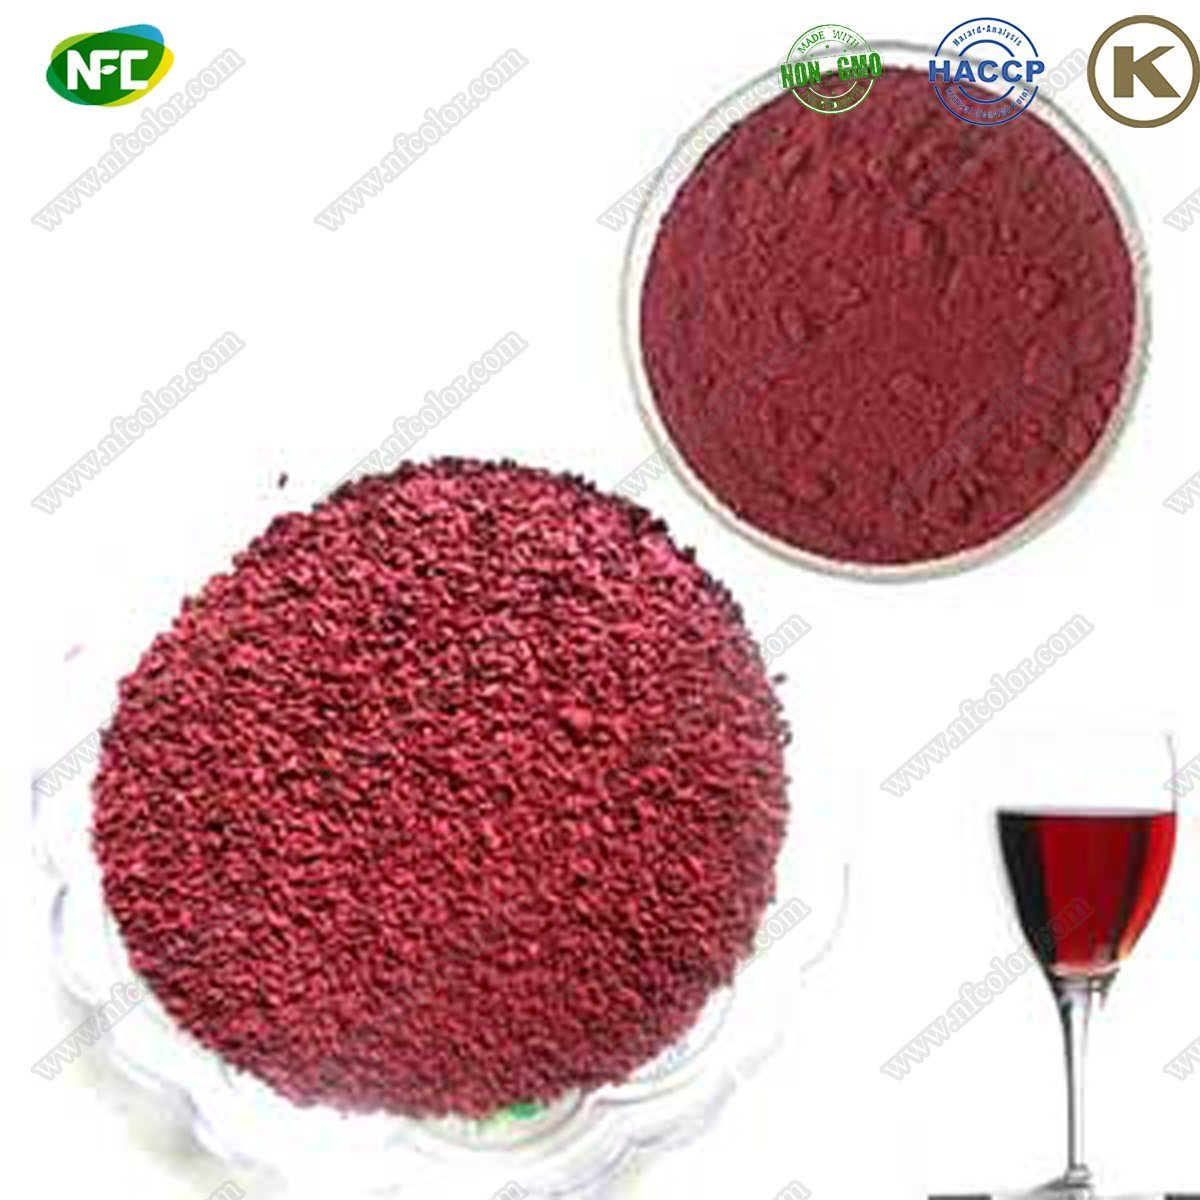 [Hot Item] Organic Pure Nutrition Supplement Red Yeast Rice Powder in Bulk